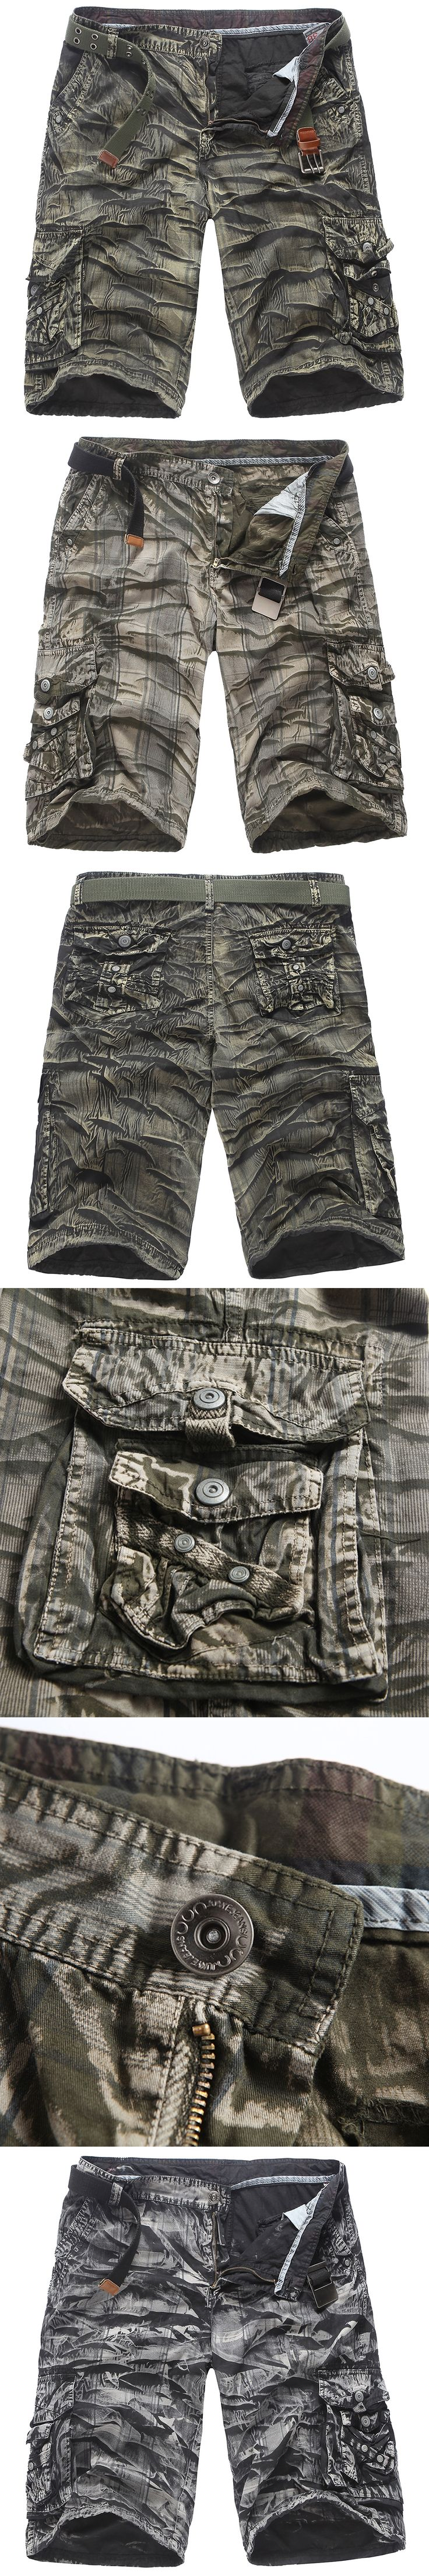 Summer Men Cargo Shorts 2017 New Brand New Army Camouflage Military Shorts Men Cotton Loose Work Casual Short Pants Plus Size